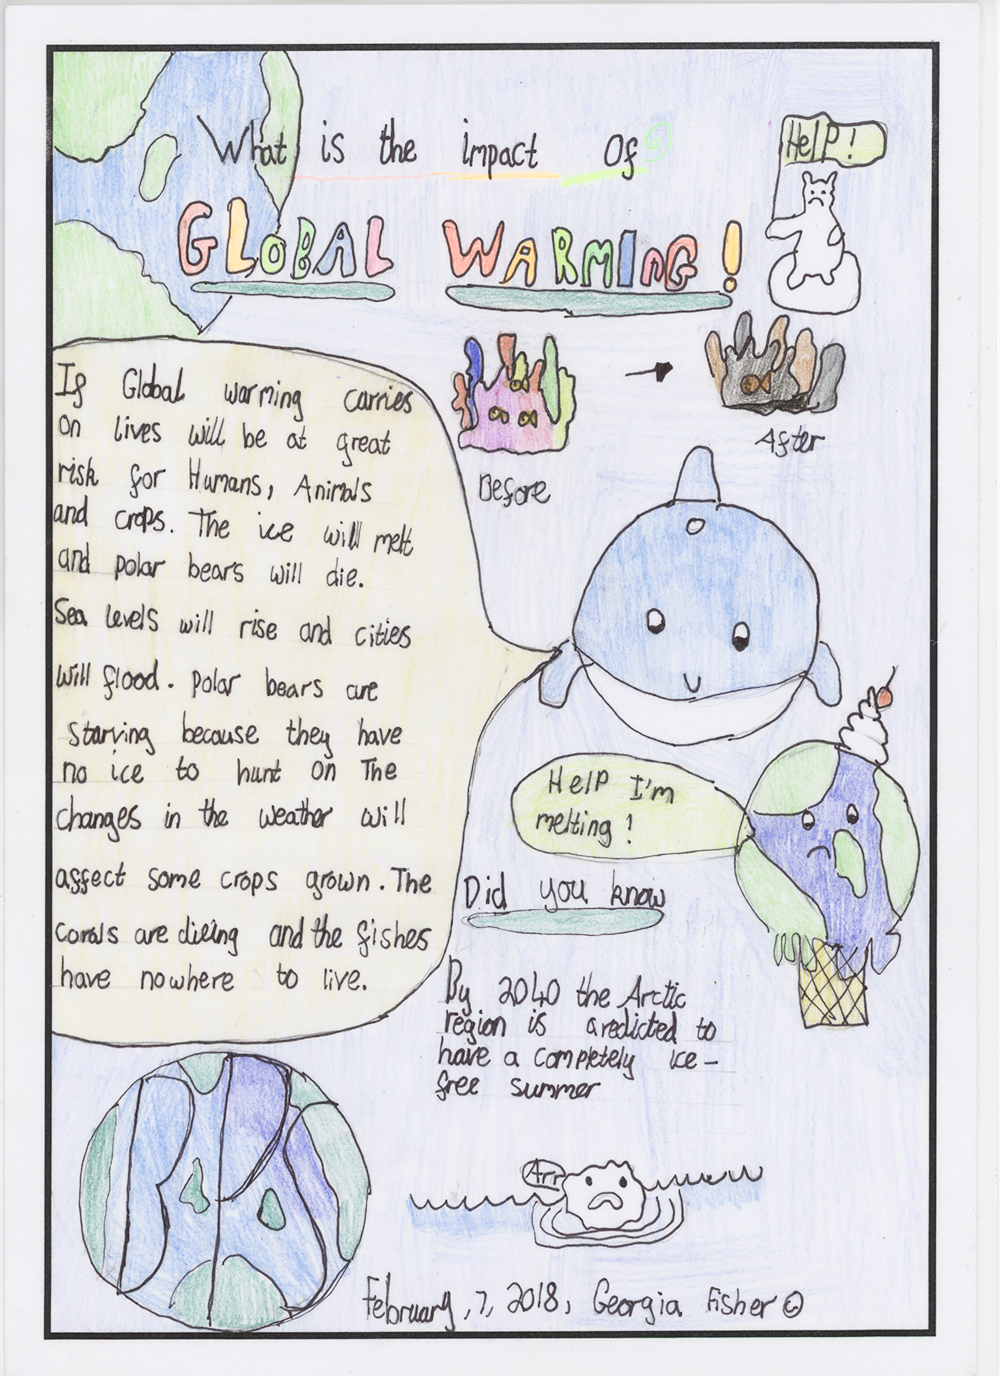 A student comic illustration about the impacts of global warming